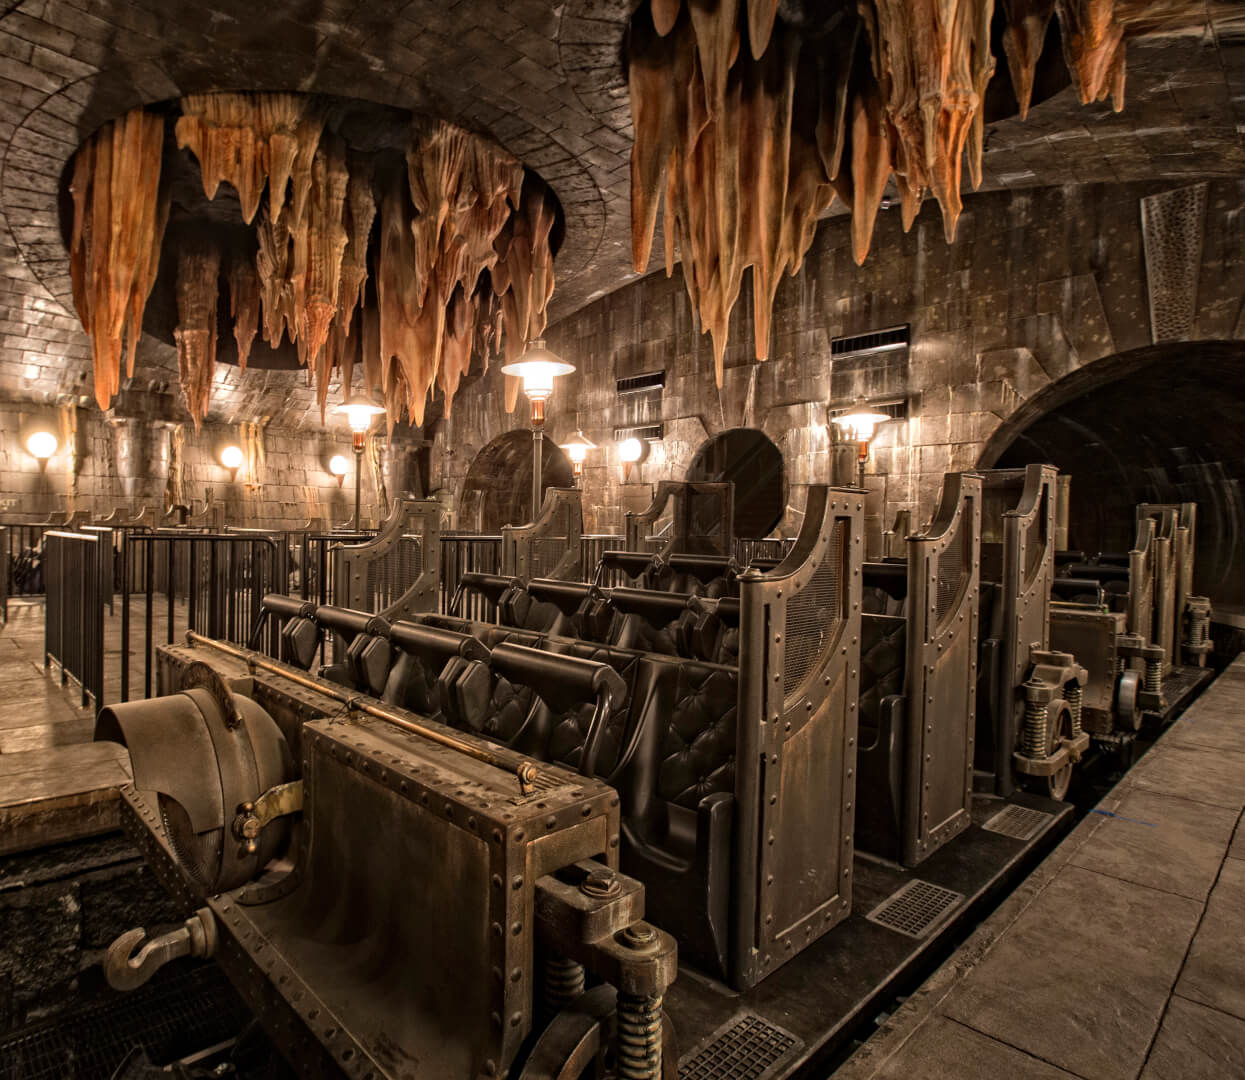 voldemort bellatrix revealed in new escape from gringotts ride details for universal orlando. Black Bedroom Furniture Sets. Home Design Ideas